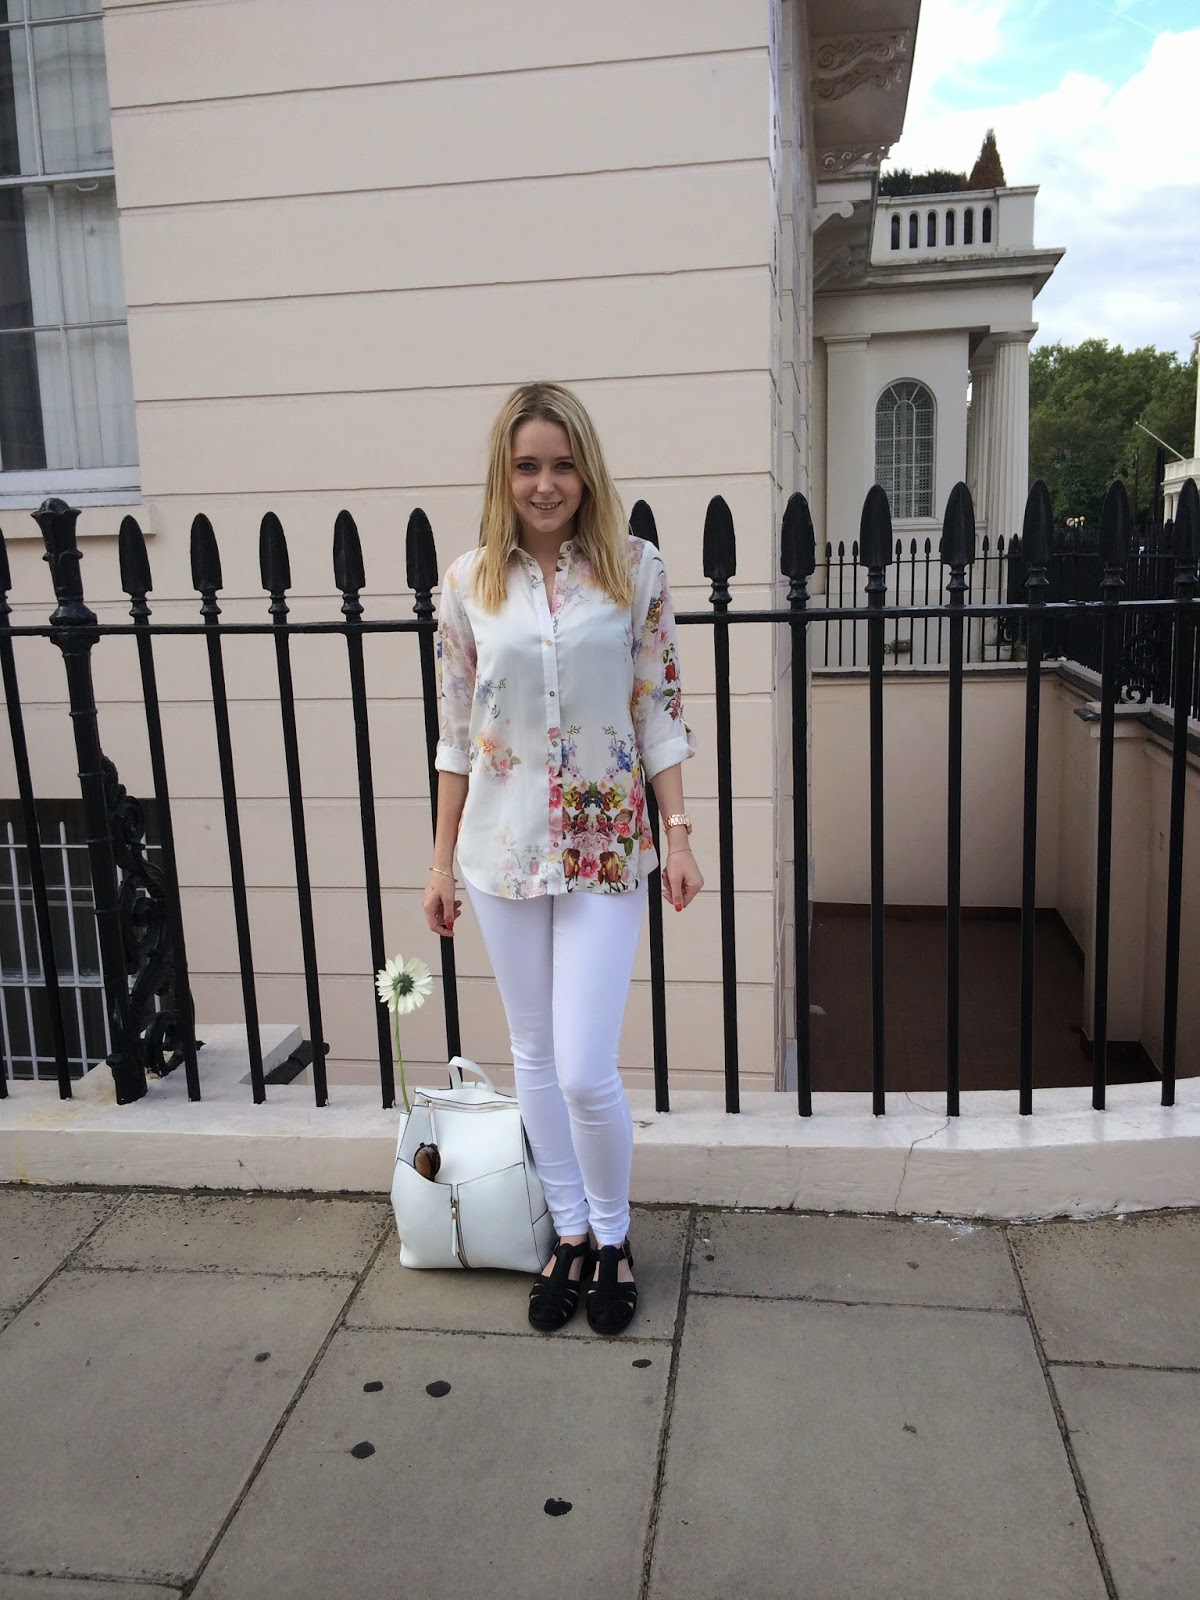 Florals In Knightsbridge on Lrsmth-Fashion fashion blog